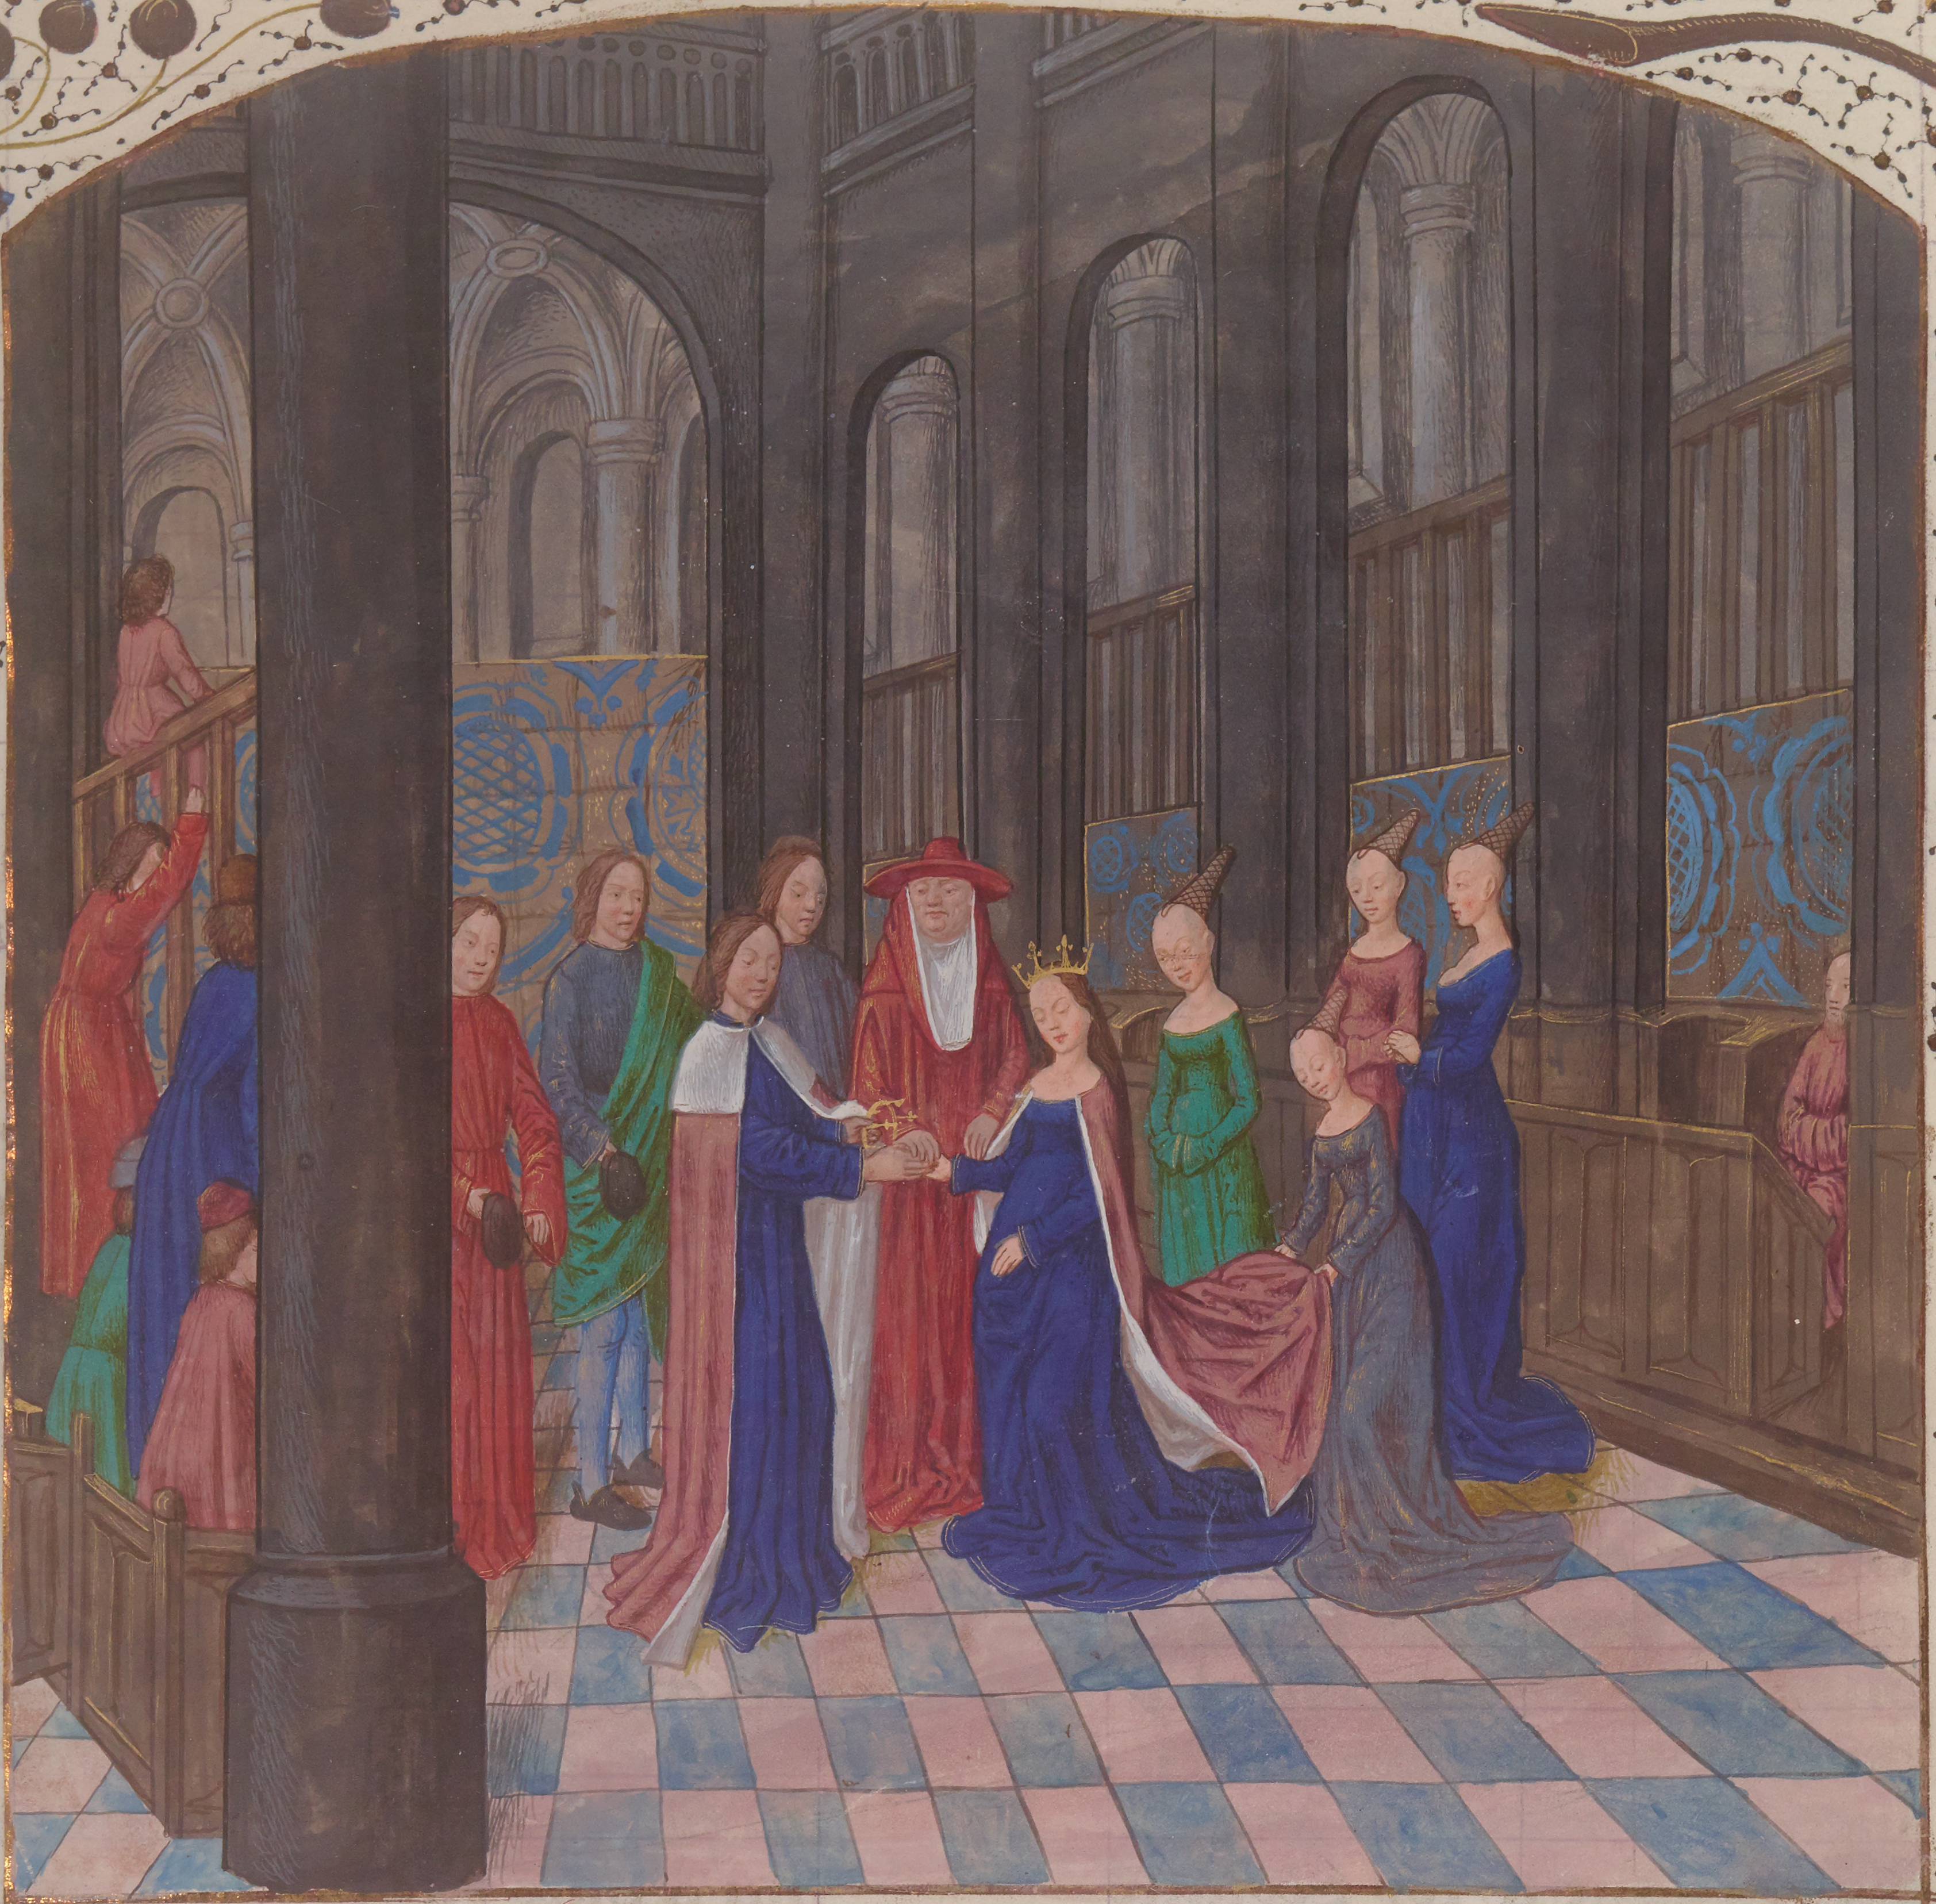 An image depicting the marriage between Edward IV and Elizabeth Woodville.